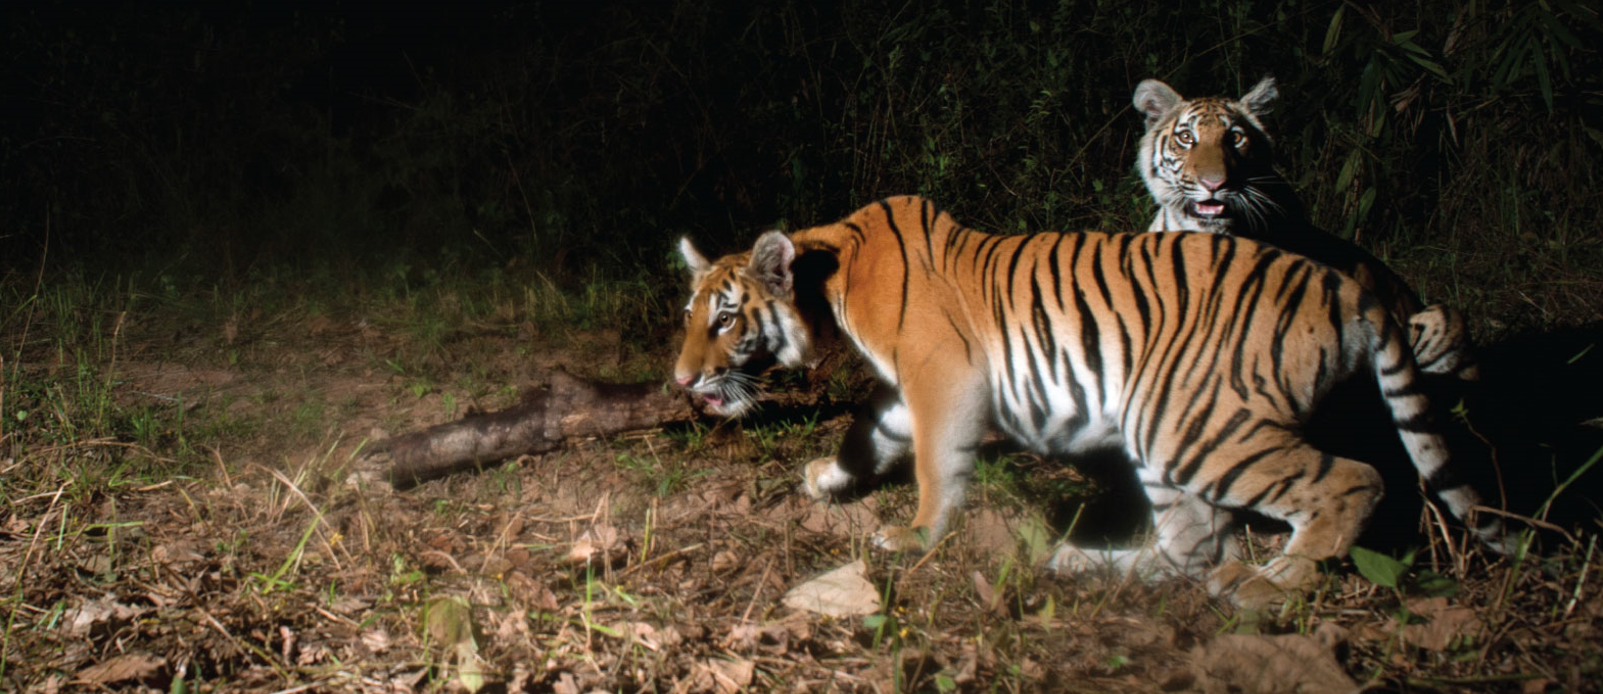 Photos of wild tiger cubs in Thailand rekindles hope for species